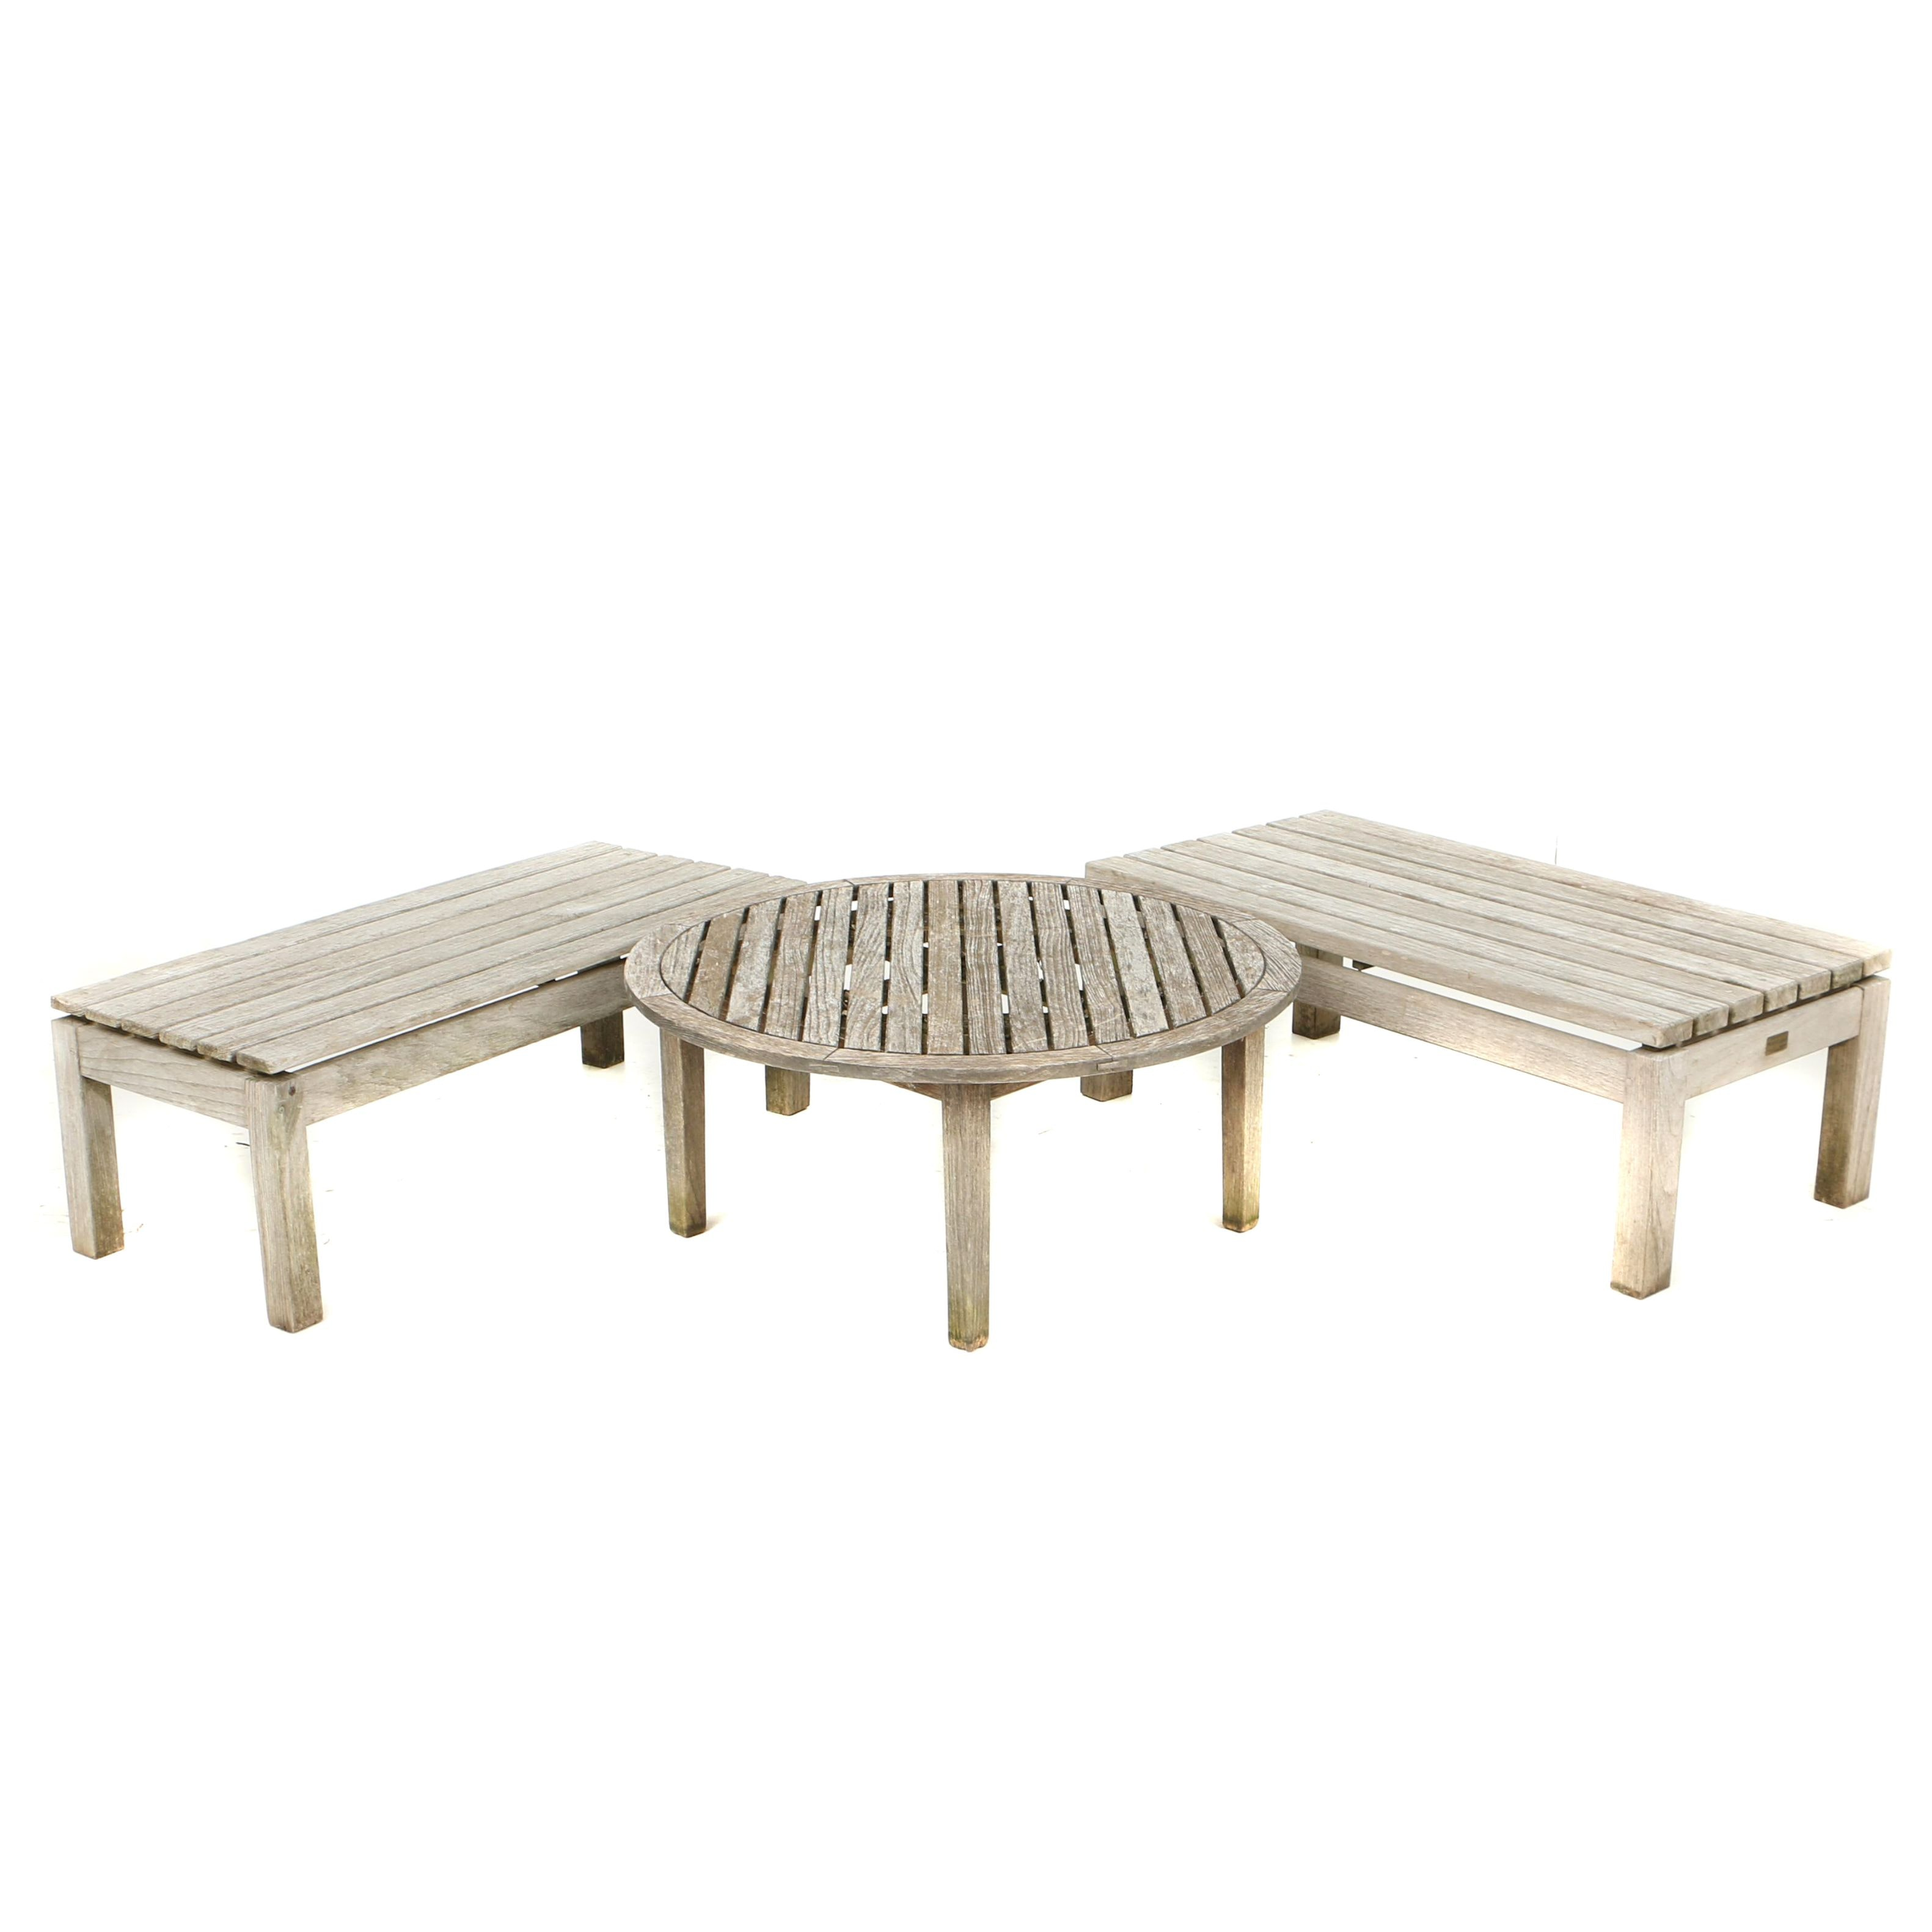 Teak Patio Coffee Tables, Including Smith & Hawken and Wood Classics